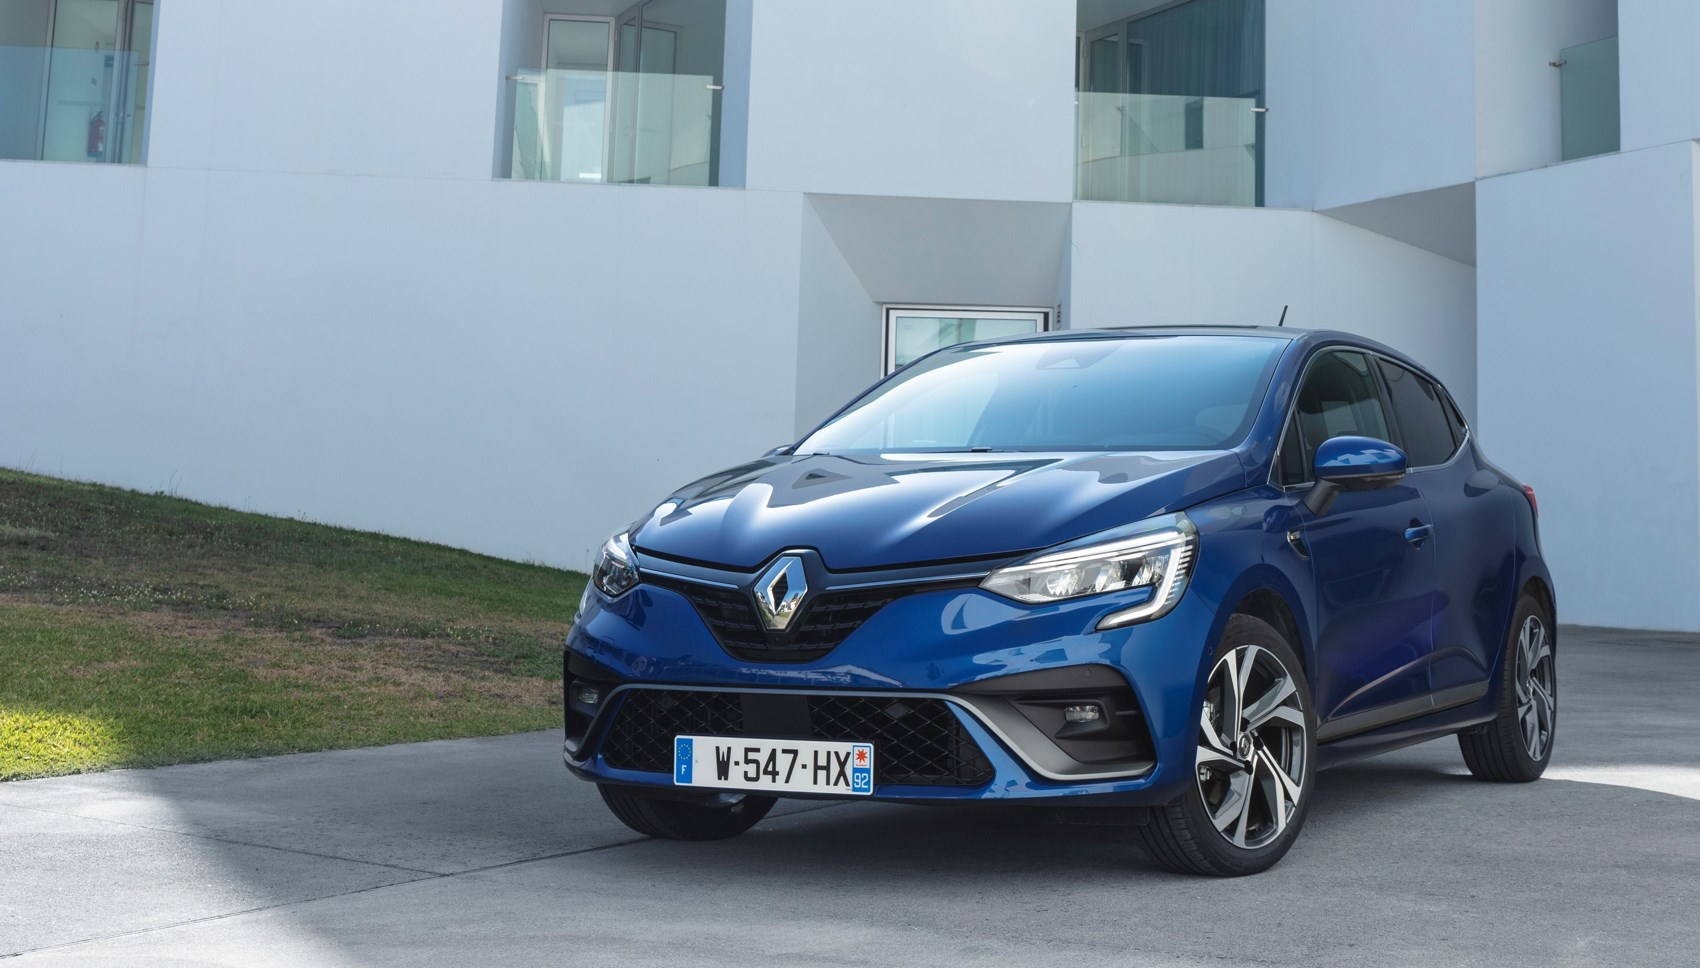 Renault Clio (2019) review: the same but better | CAR Magazine